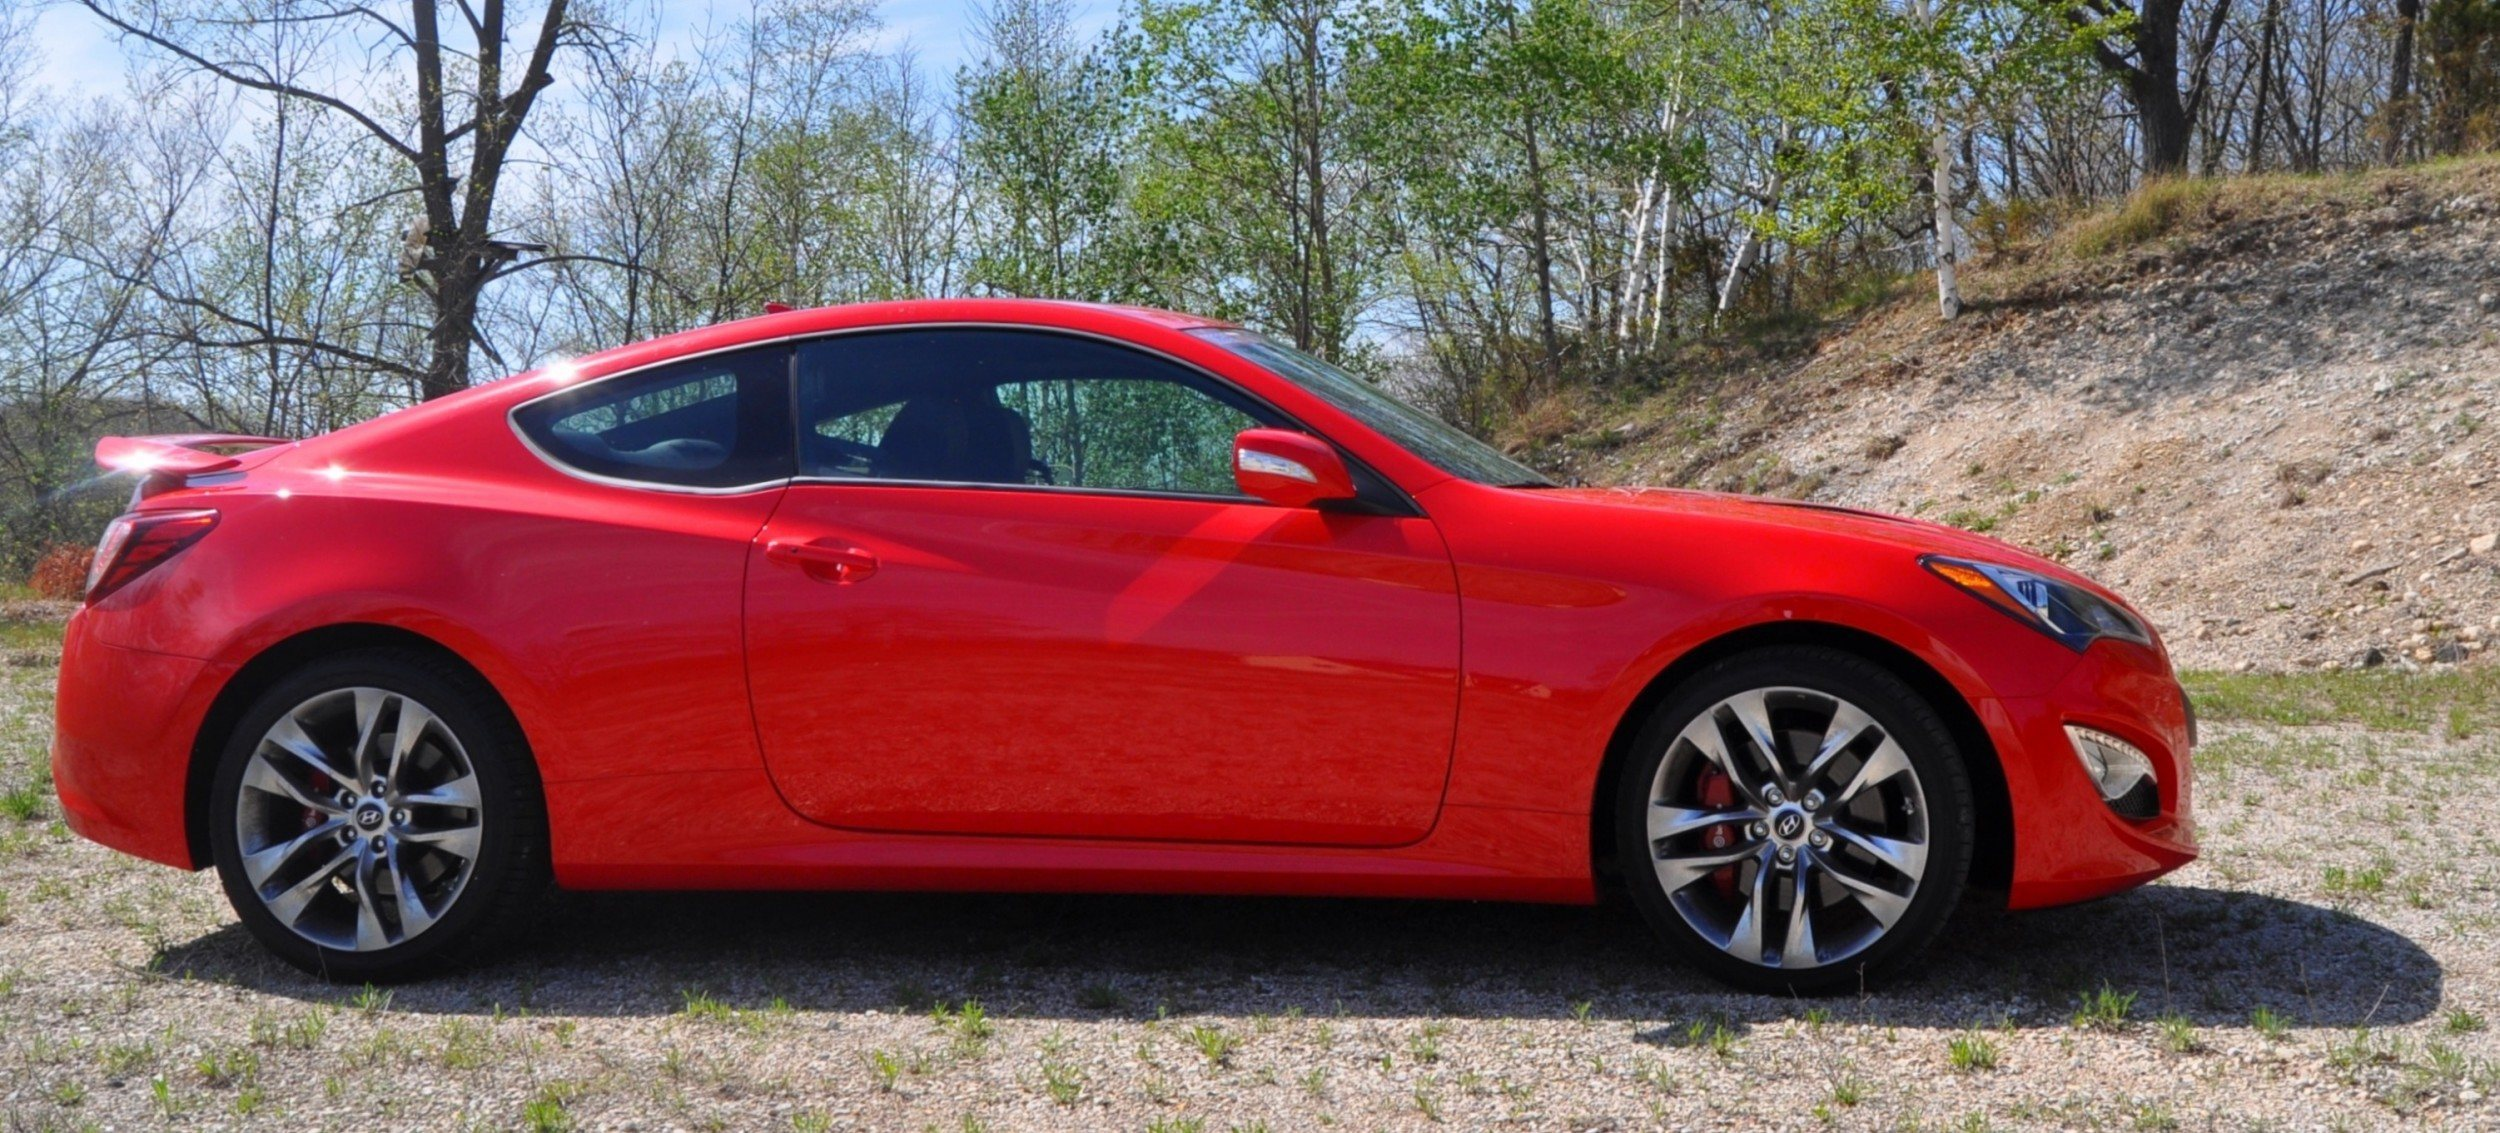 2014 hyundai genesis coupe 3 8l v6 r spec road test review of fast and fun rwd sportscar 26. Black Bedroom Furniture Sets. Home Design Ideas